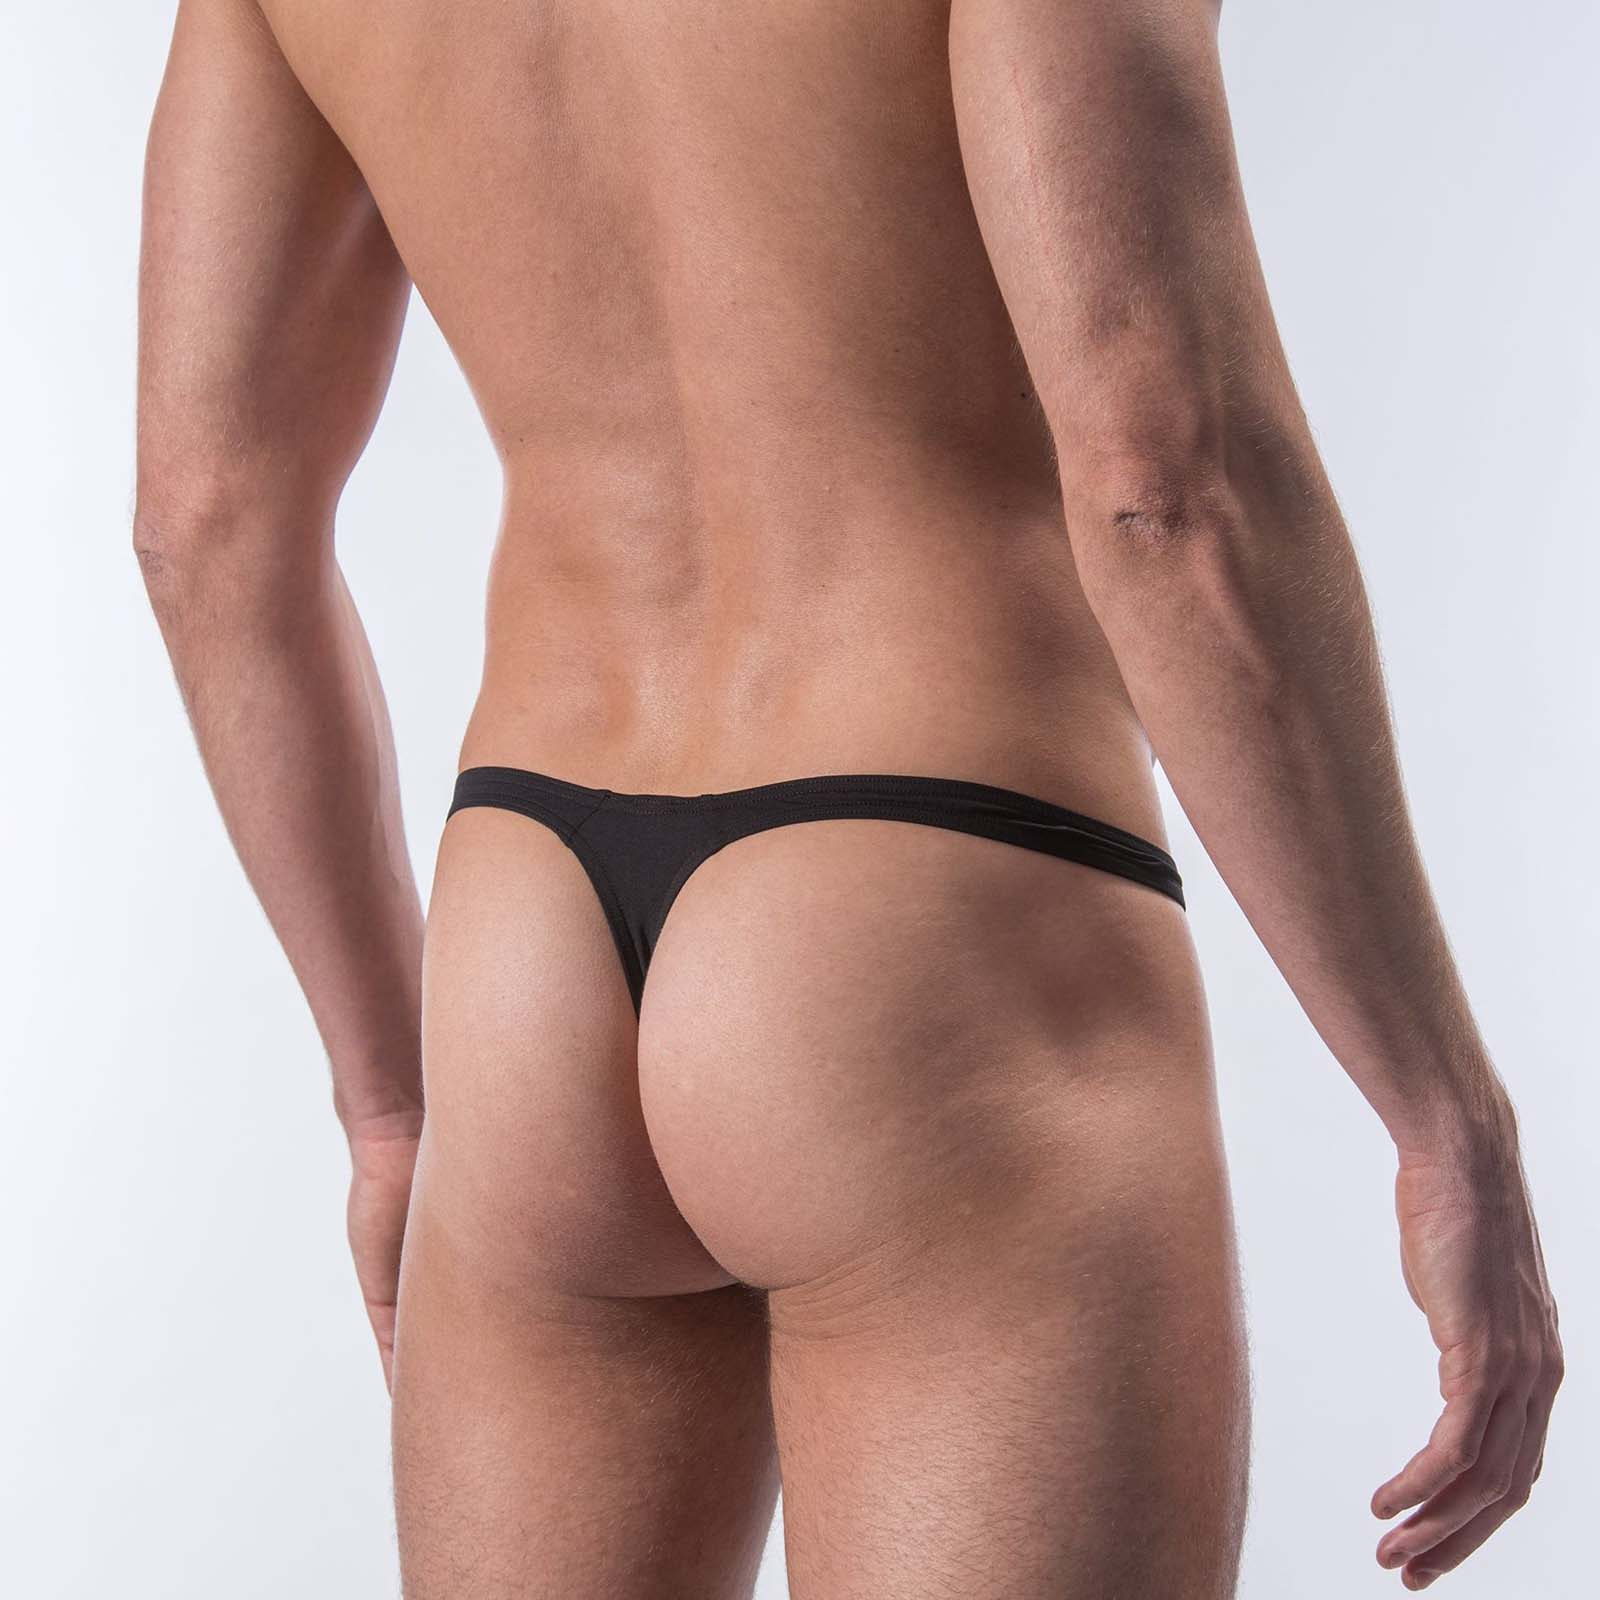 Manstore Messieurs surprise Pack Pant string m103 Taille S-L Black NEUF